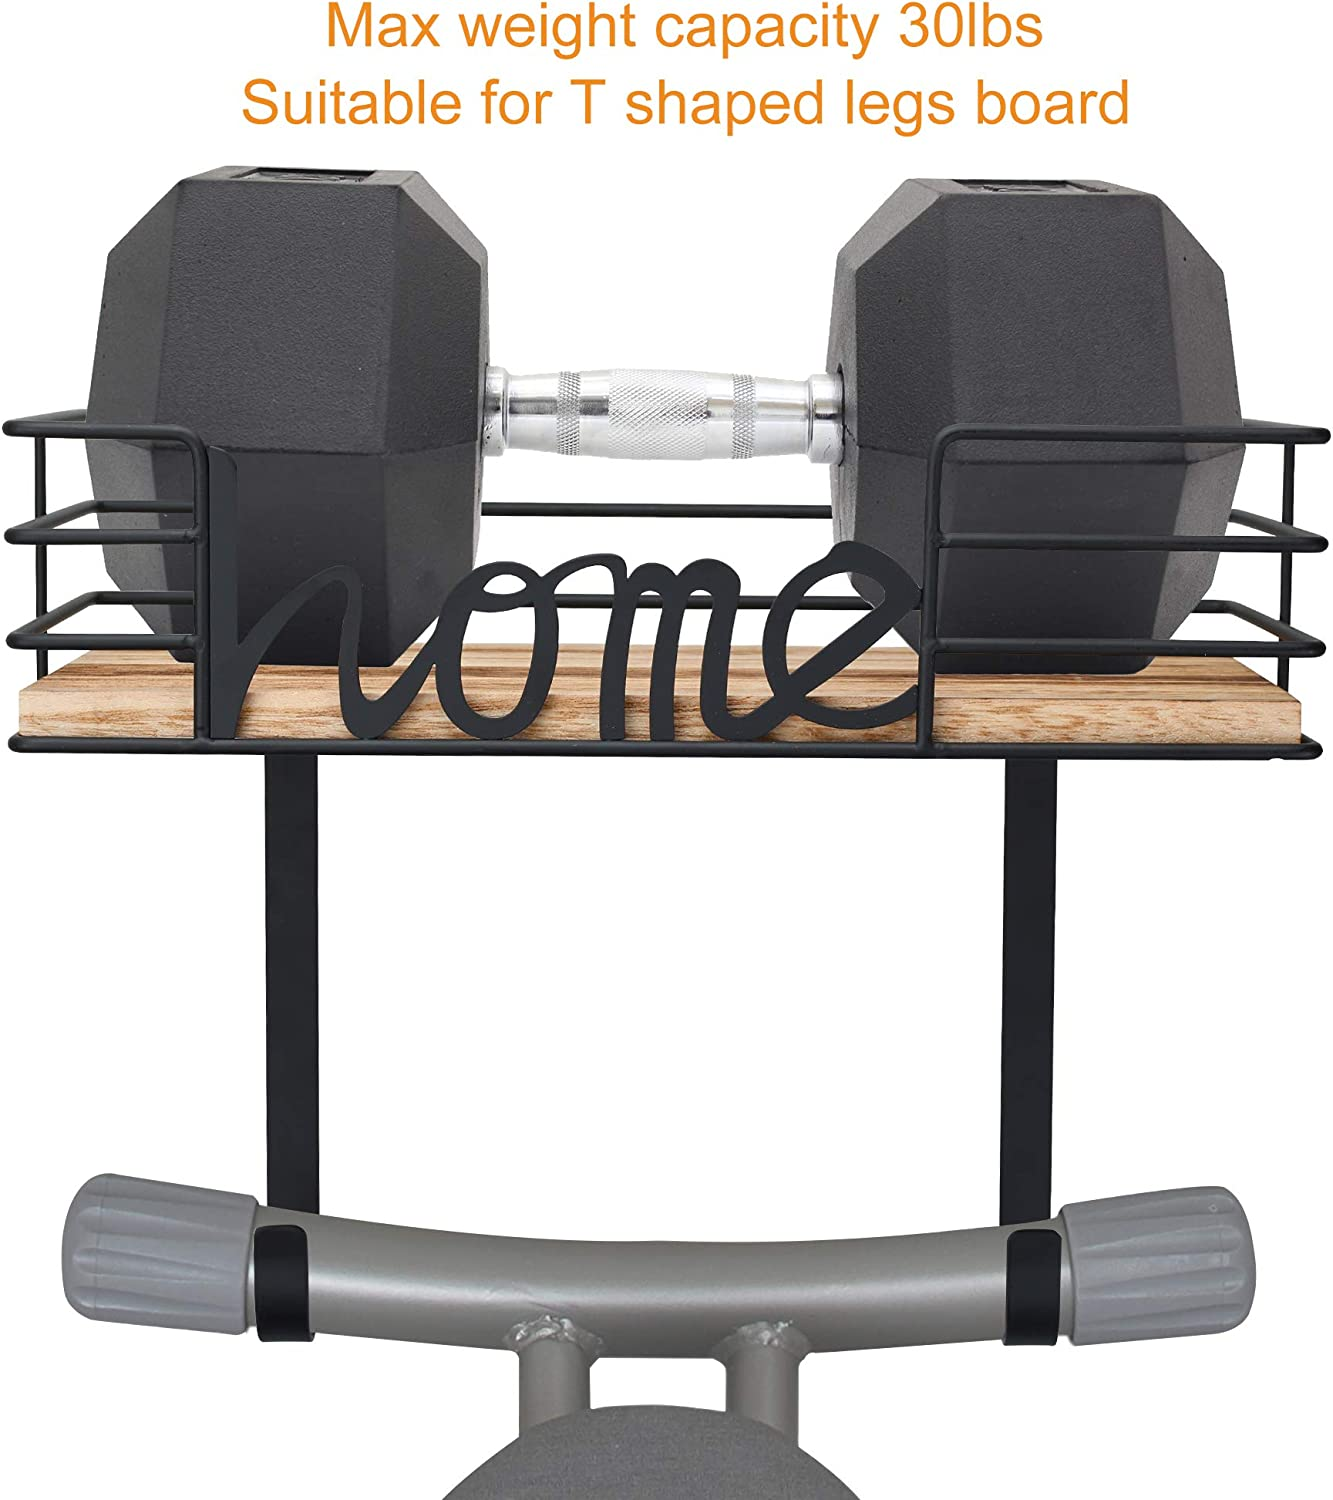 Laundry Room Iron and Ironing Board Holder Metal Wall Mount with Large Storage Wooden Base Basket and Removable Hooks Black TJ.MOREE Ironing Board Hanger